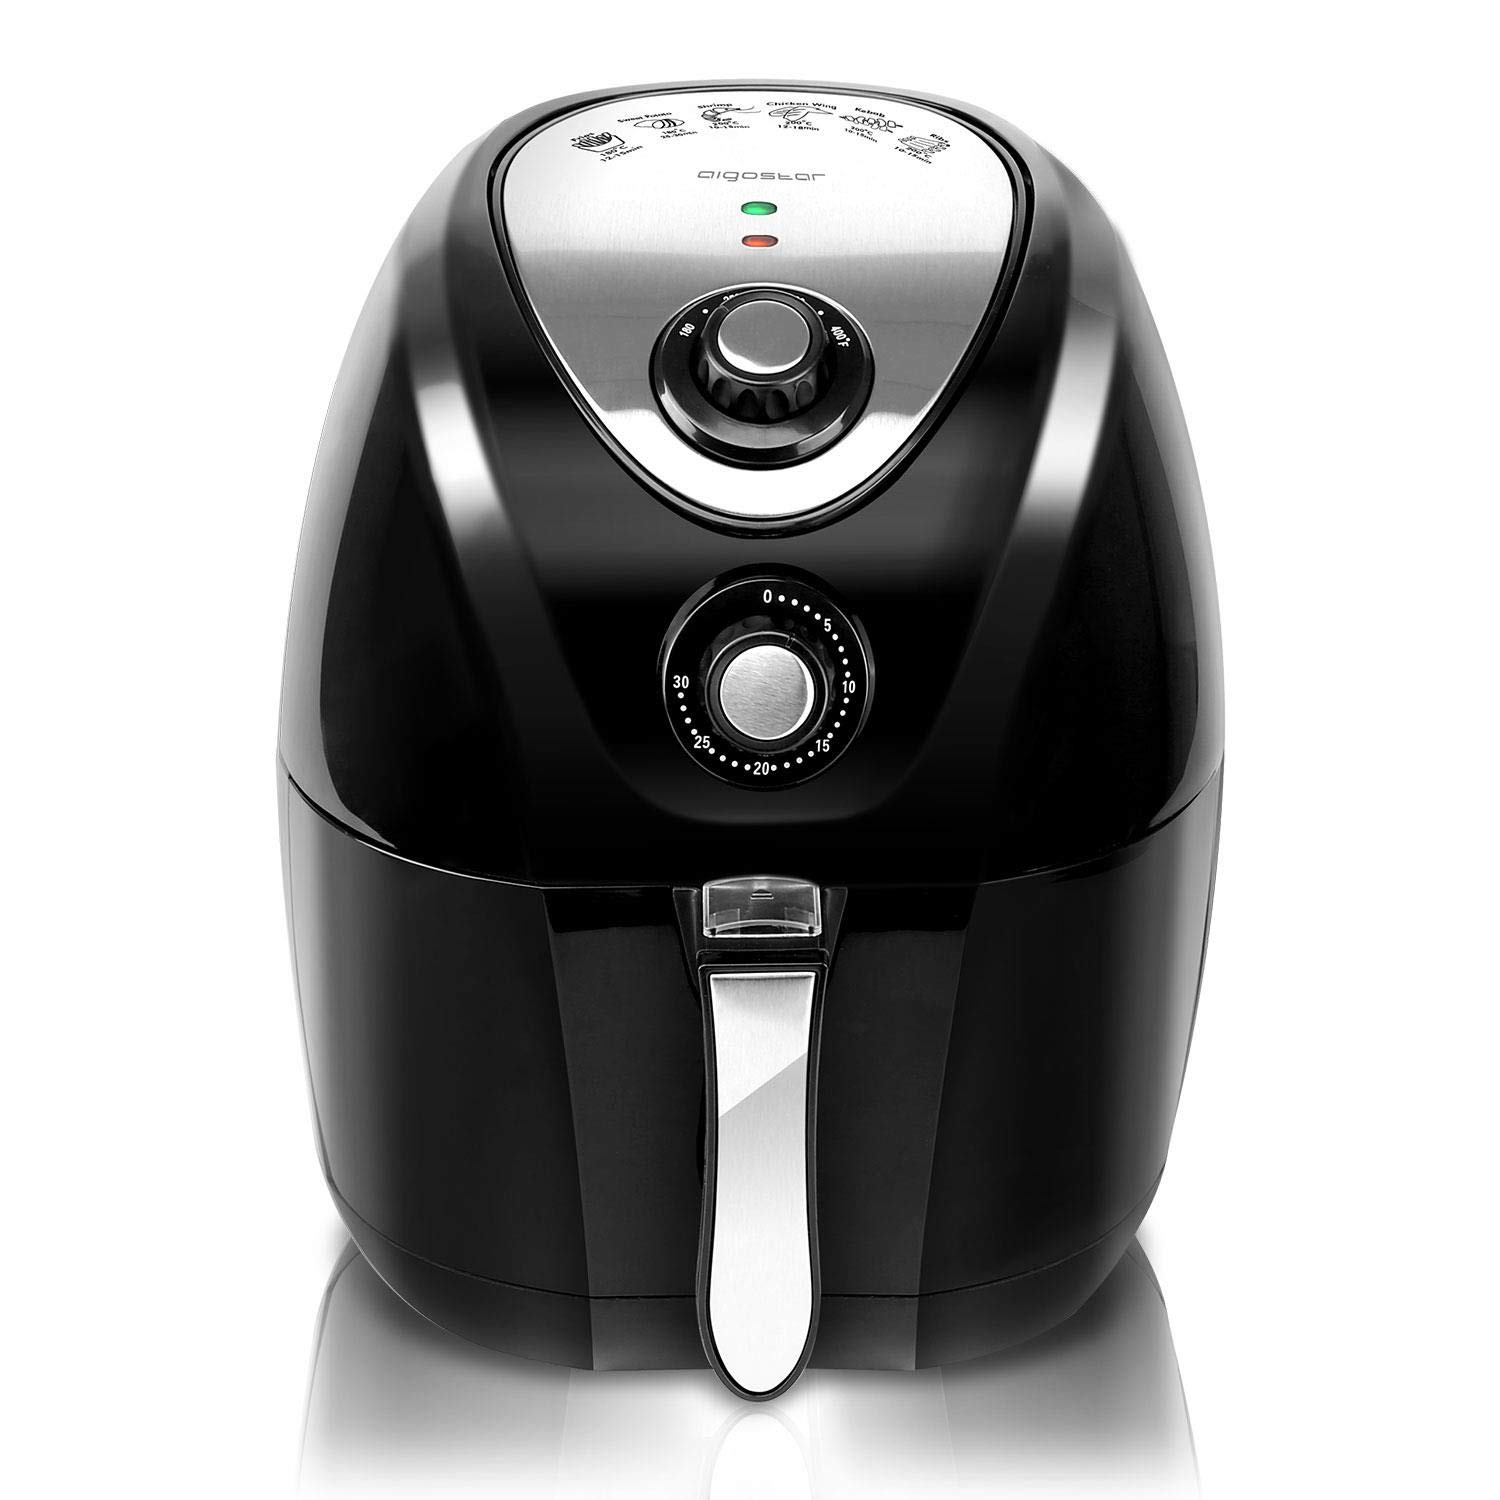 Aigostar Dragon Pro Air Fryer, 3.4Qt Electric Hot Air Fryers Oven Oilless Cooker with Detachable Non-stick Basket & Automatic Timer & Temperature Control for Fast Healthier Fried Food, 1400W by Aigostar (Image #9)